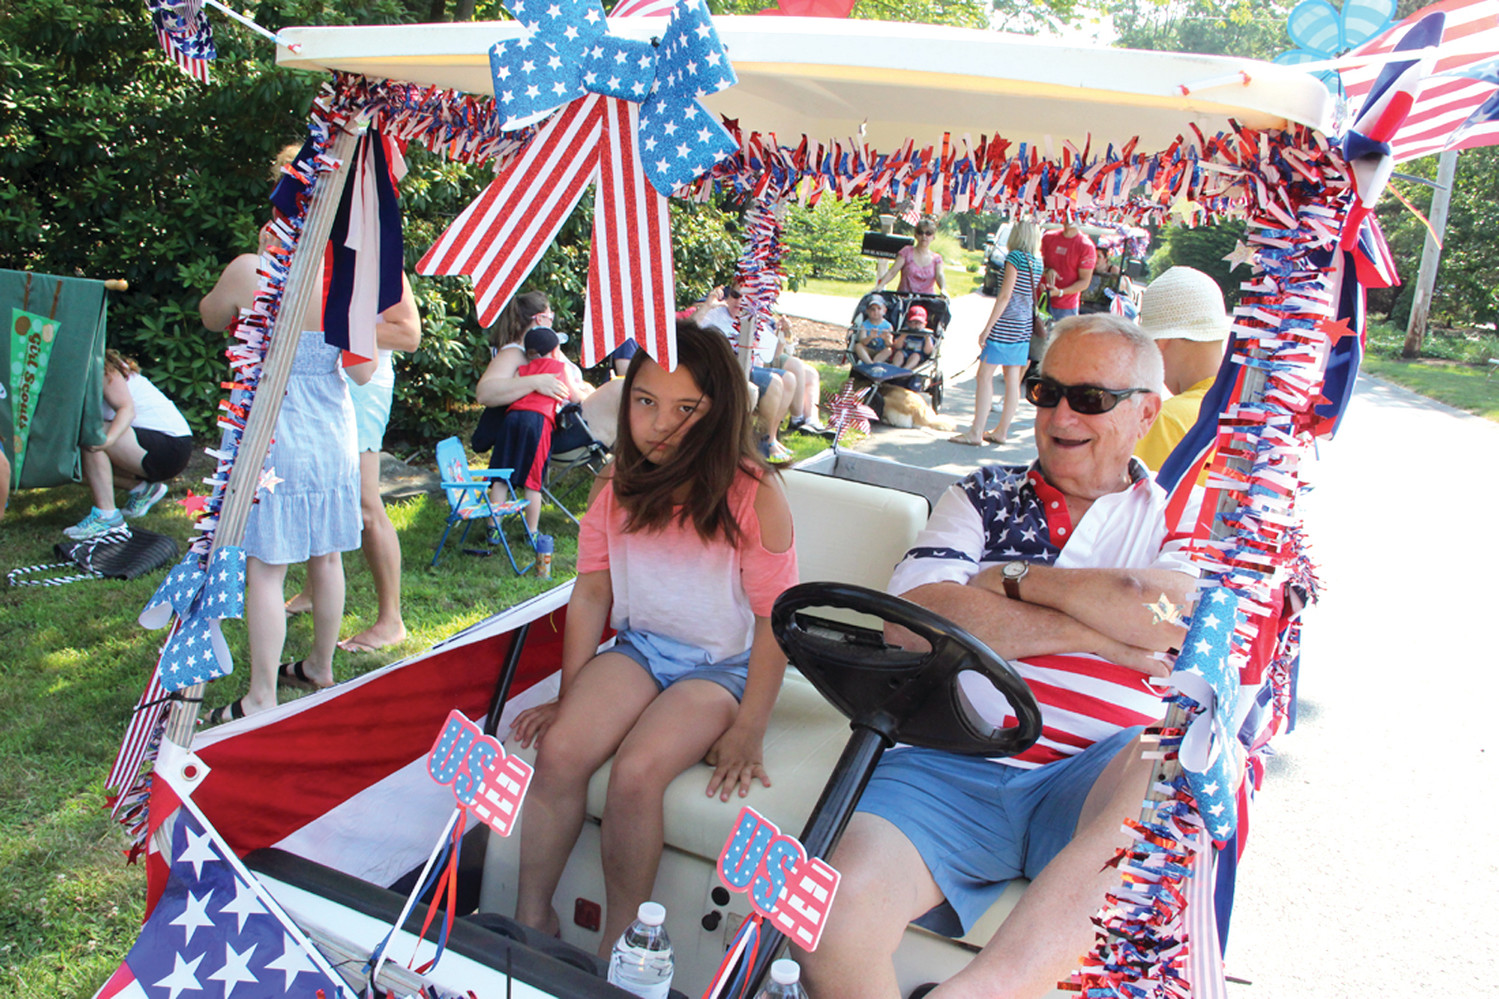 RED, WHITE, BLUE AND RIDING: Bob Sangster had the company of Layla Perry as they waited for the start of the July 4th parade.